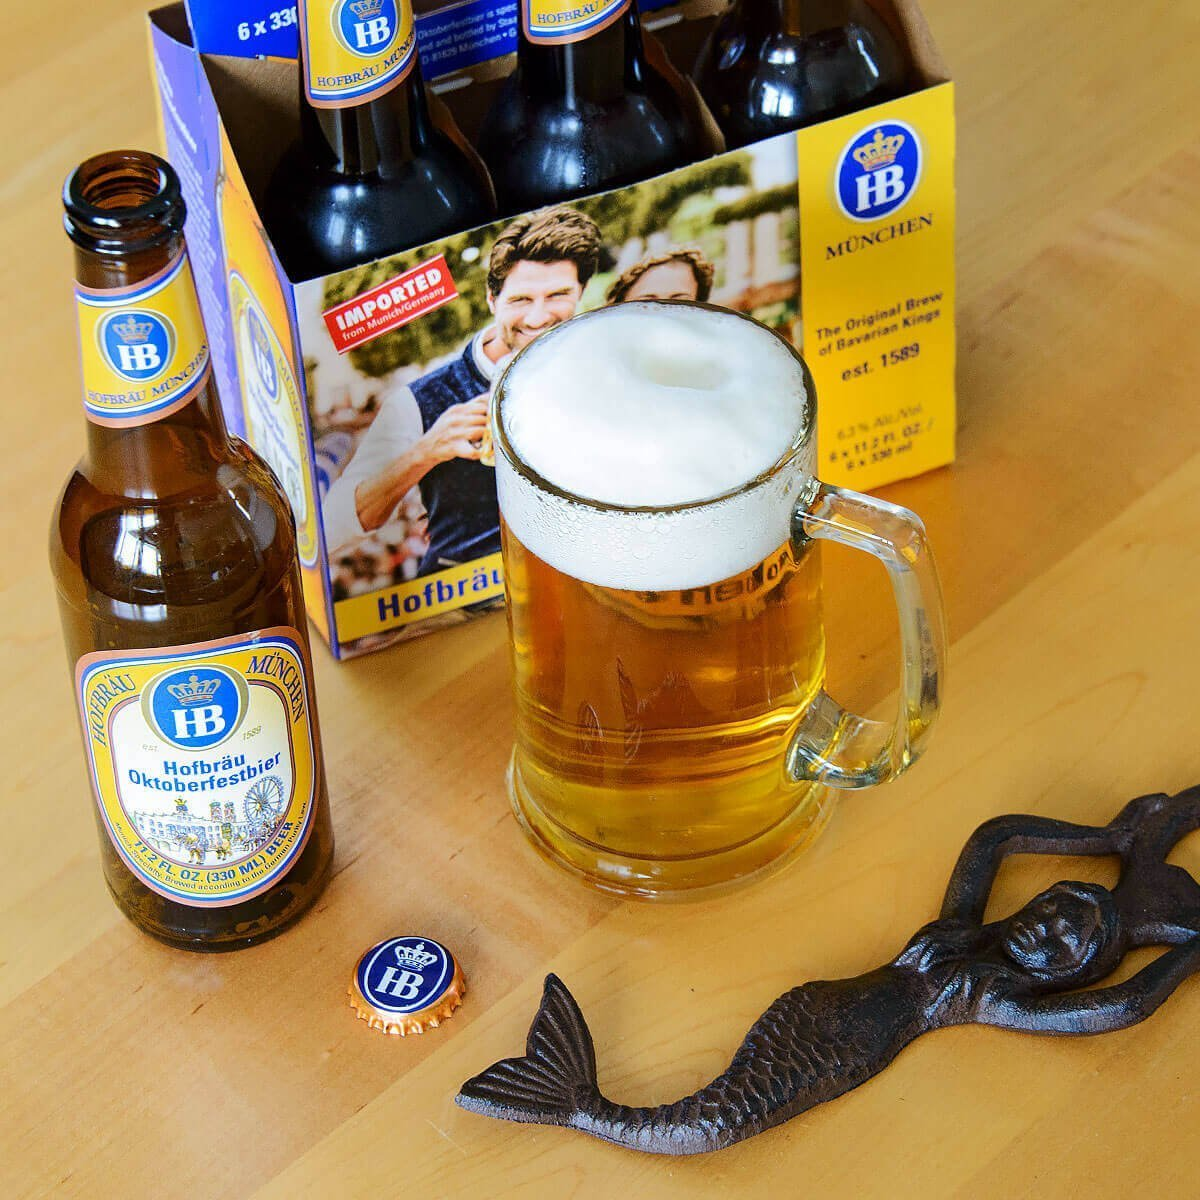 Hofbräu Oktoberfestbier, a German Märzen by Hofbräu München is light, approachable, and easily quaffed—the classic Festbier!